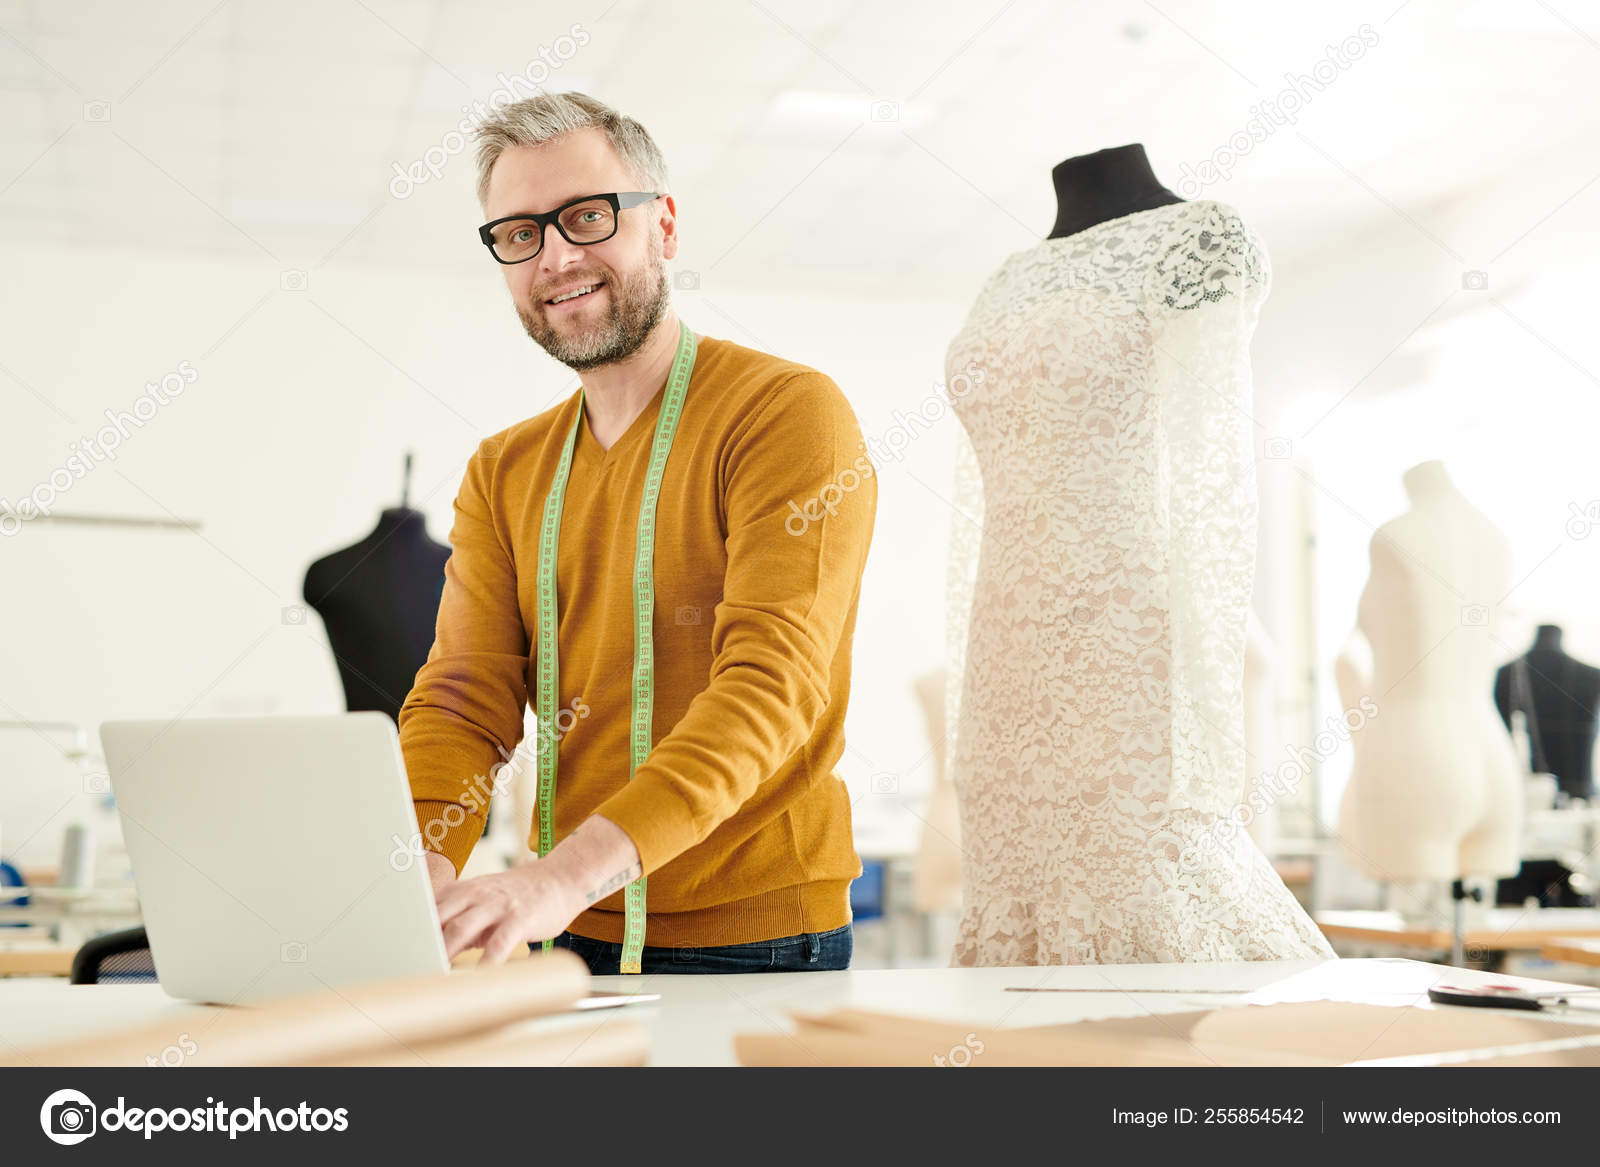 Mature Successful Tailor Casualwear Standing Desk Searching New Creative Ideas Stock Photo C Pressmaster 255854542